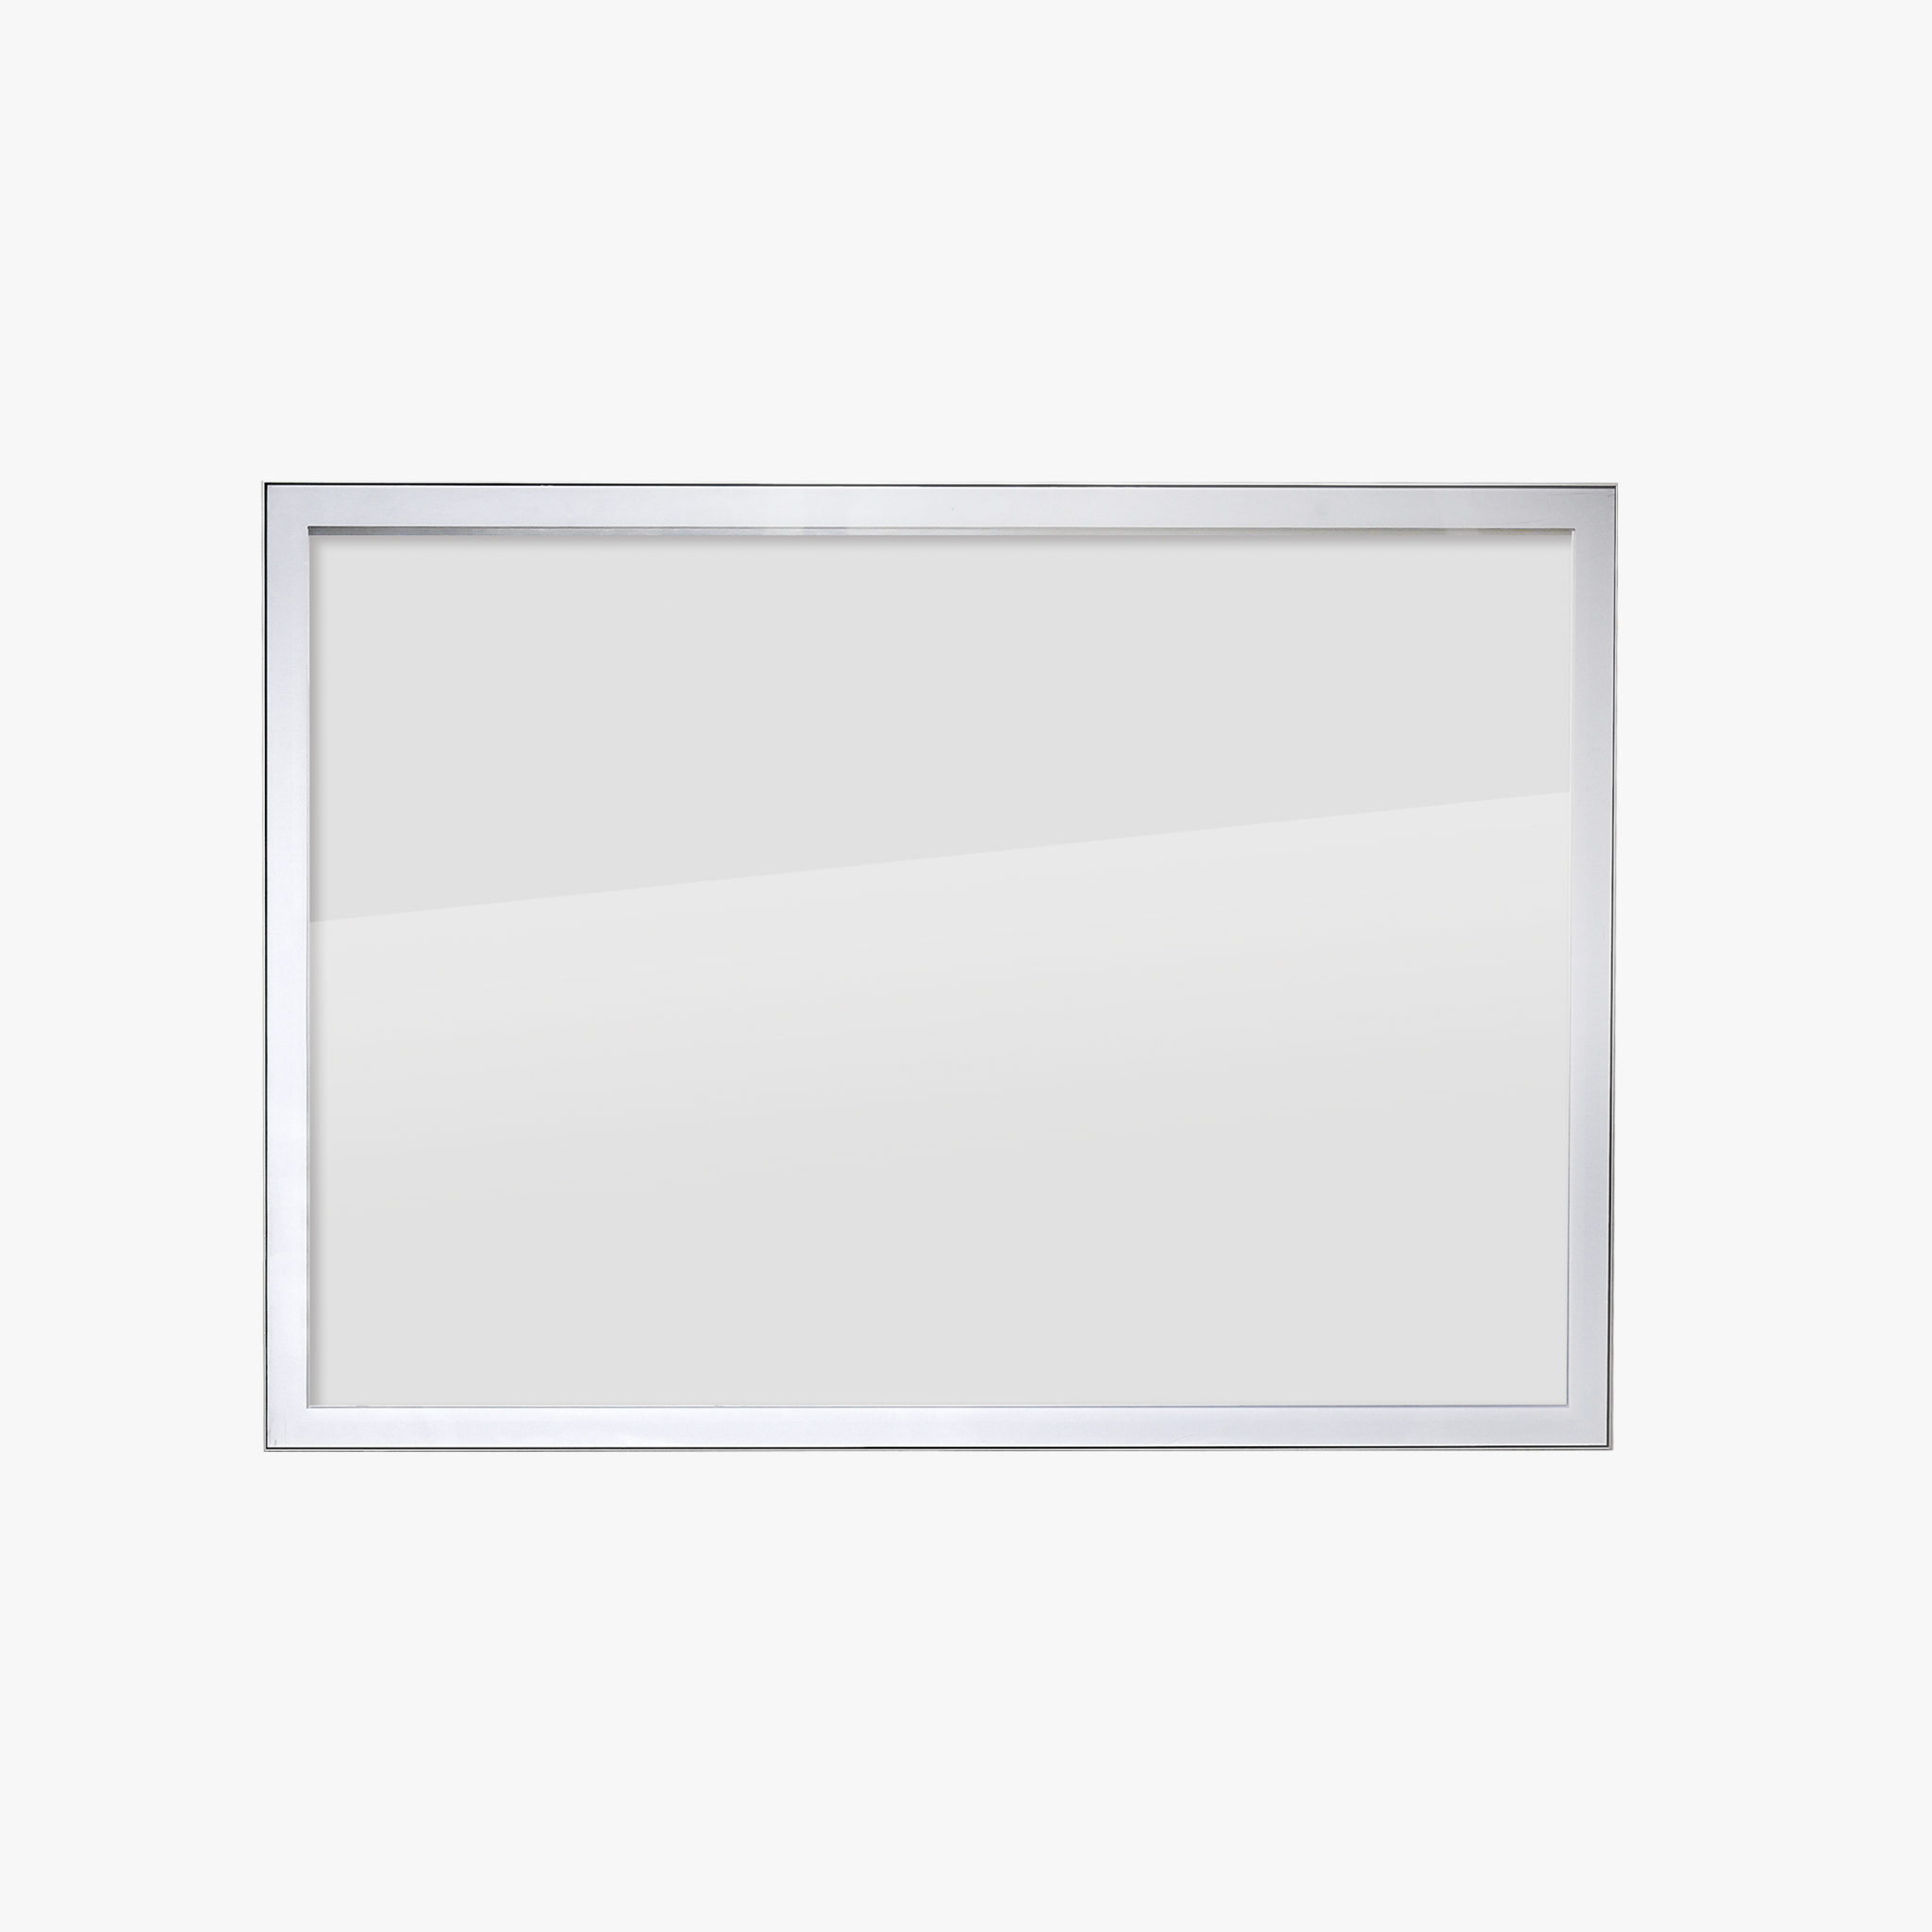 Wall Mounted Notice Boards FlexiDisplay ClipLok